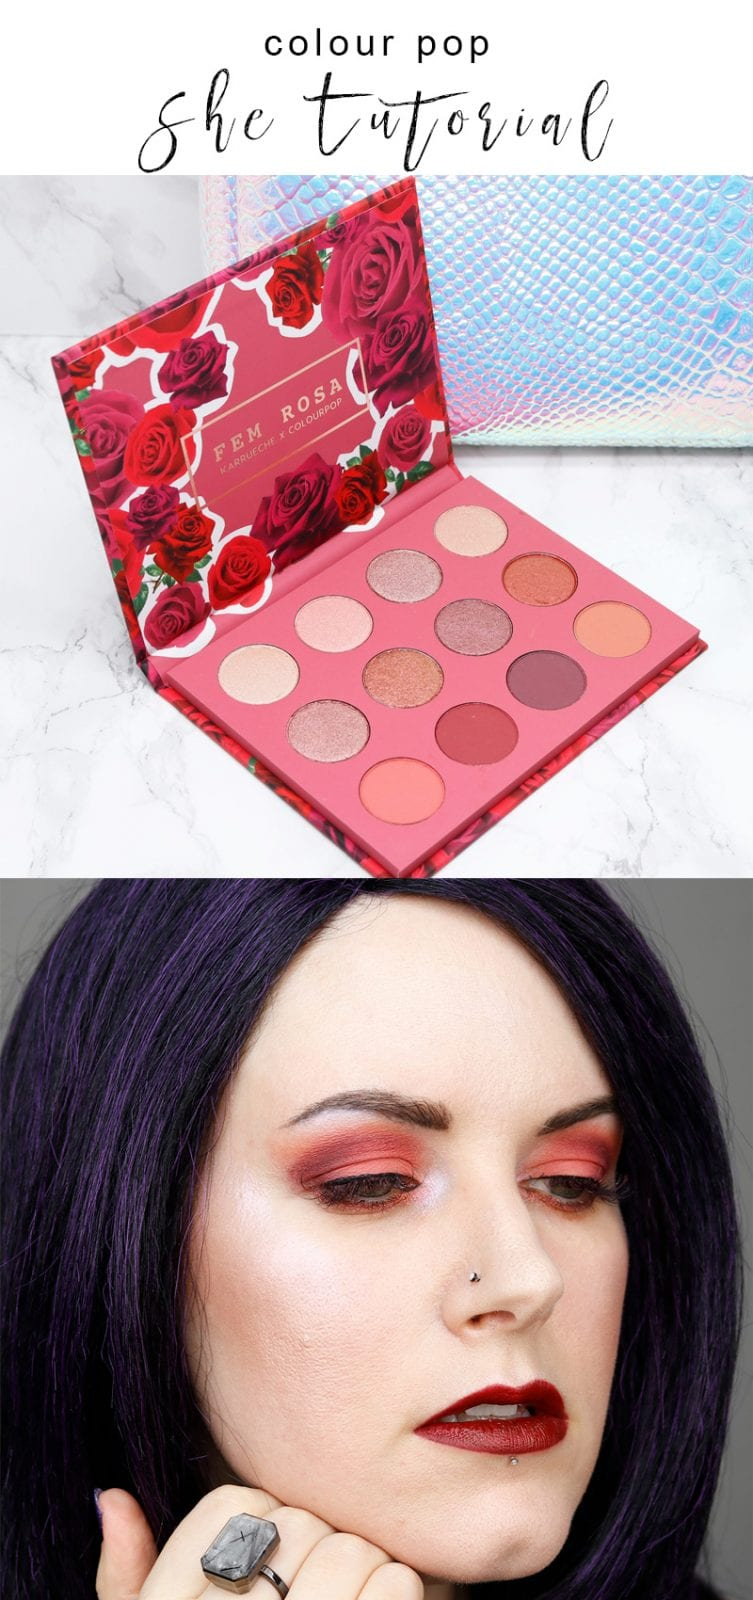 Colour Pop She Tutorial - I share 2 Colour Pop She palette tutorials, plus discuss the Ringly and Bellabeat Leaf Urban. They're both gorgeous pieces of wearable tech - one is like a smart watch, while the other is a health tracker.